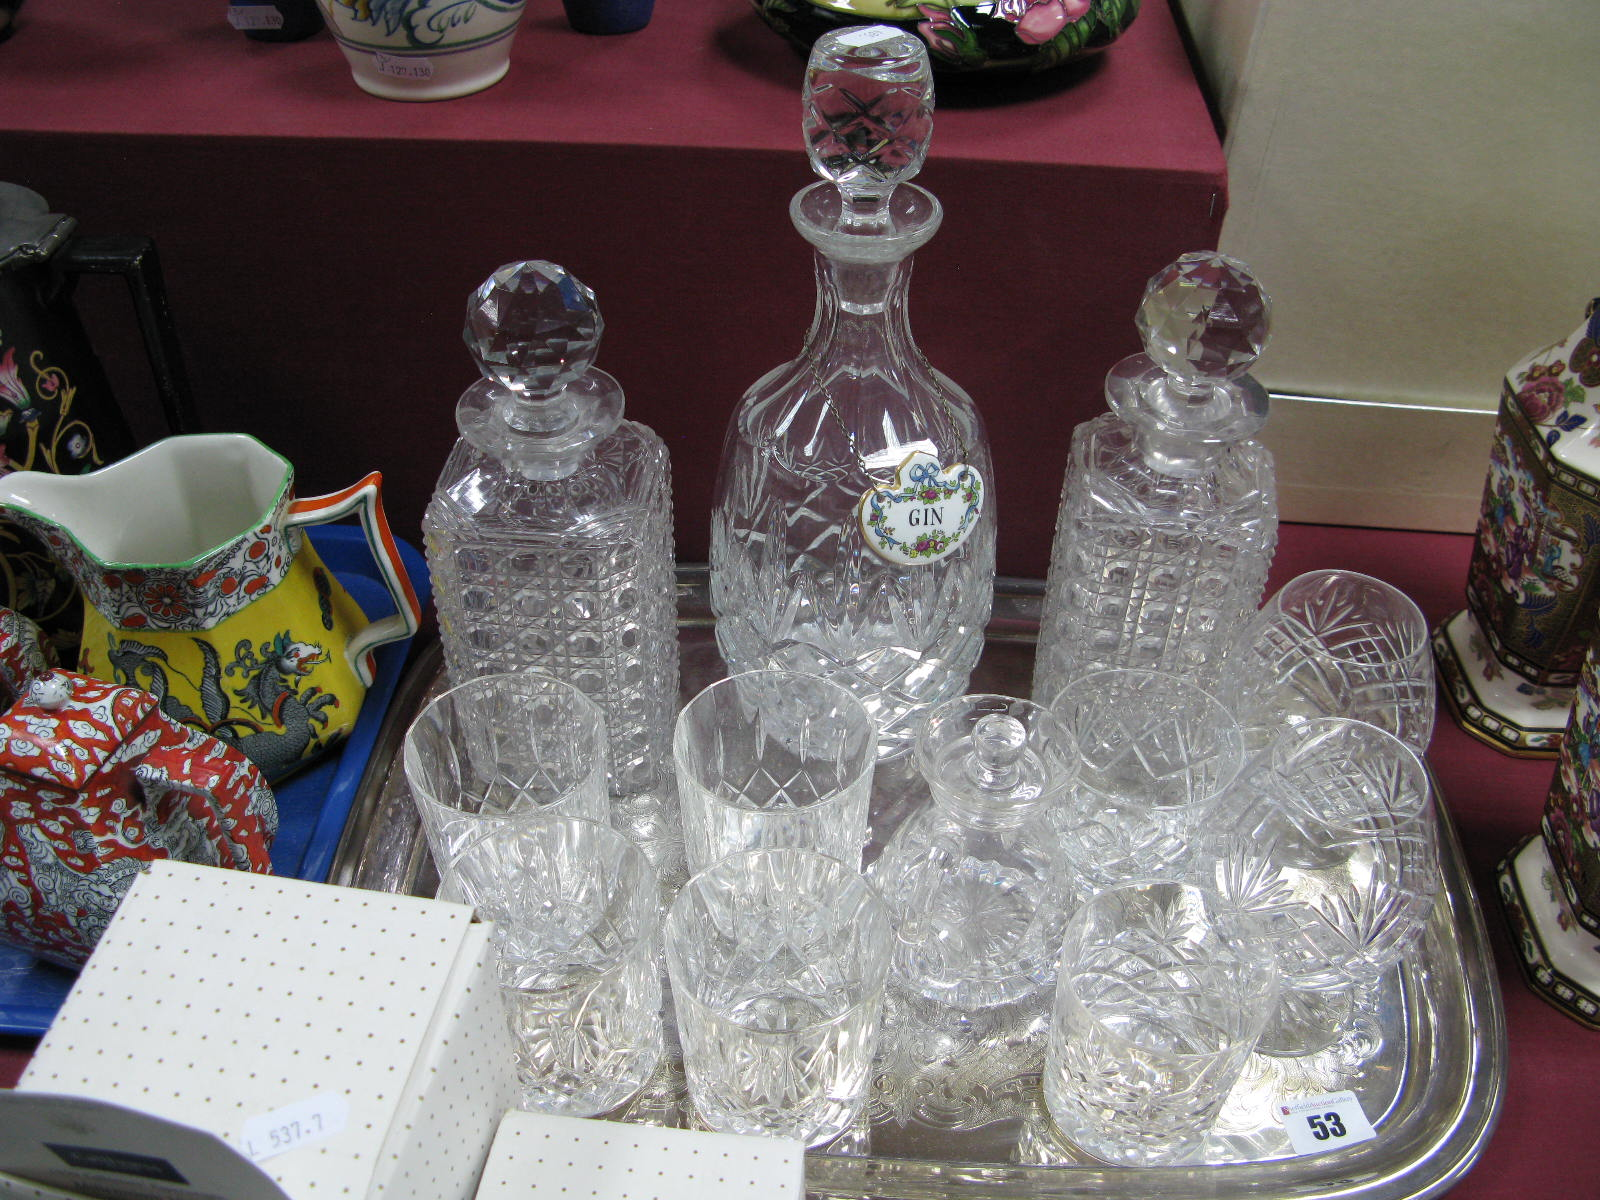 Lot 53 - A Pair of Hobnail Whisky Decanters, gin decanter, whisky and brandy glasses, water bottle, plated